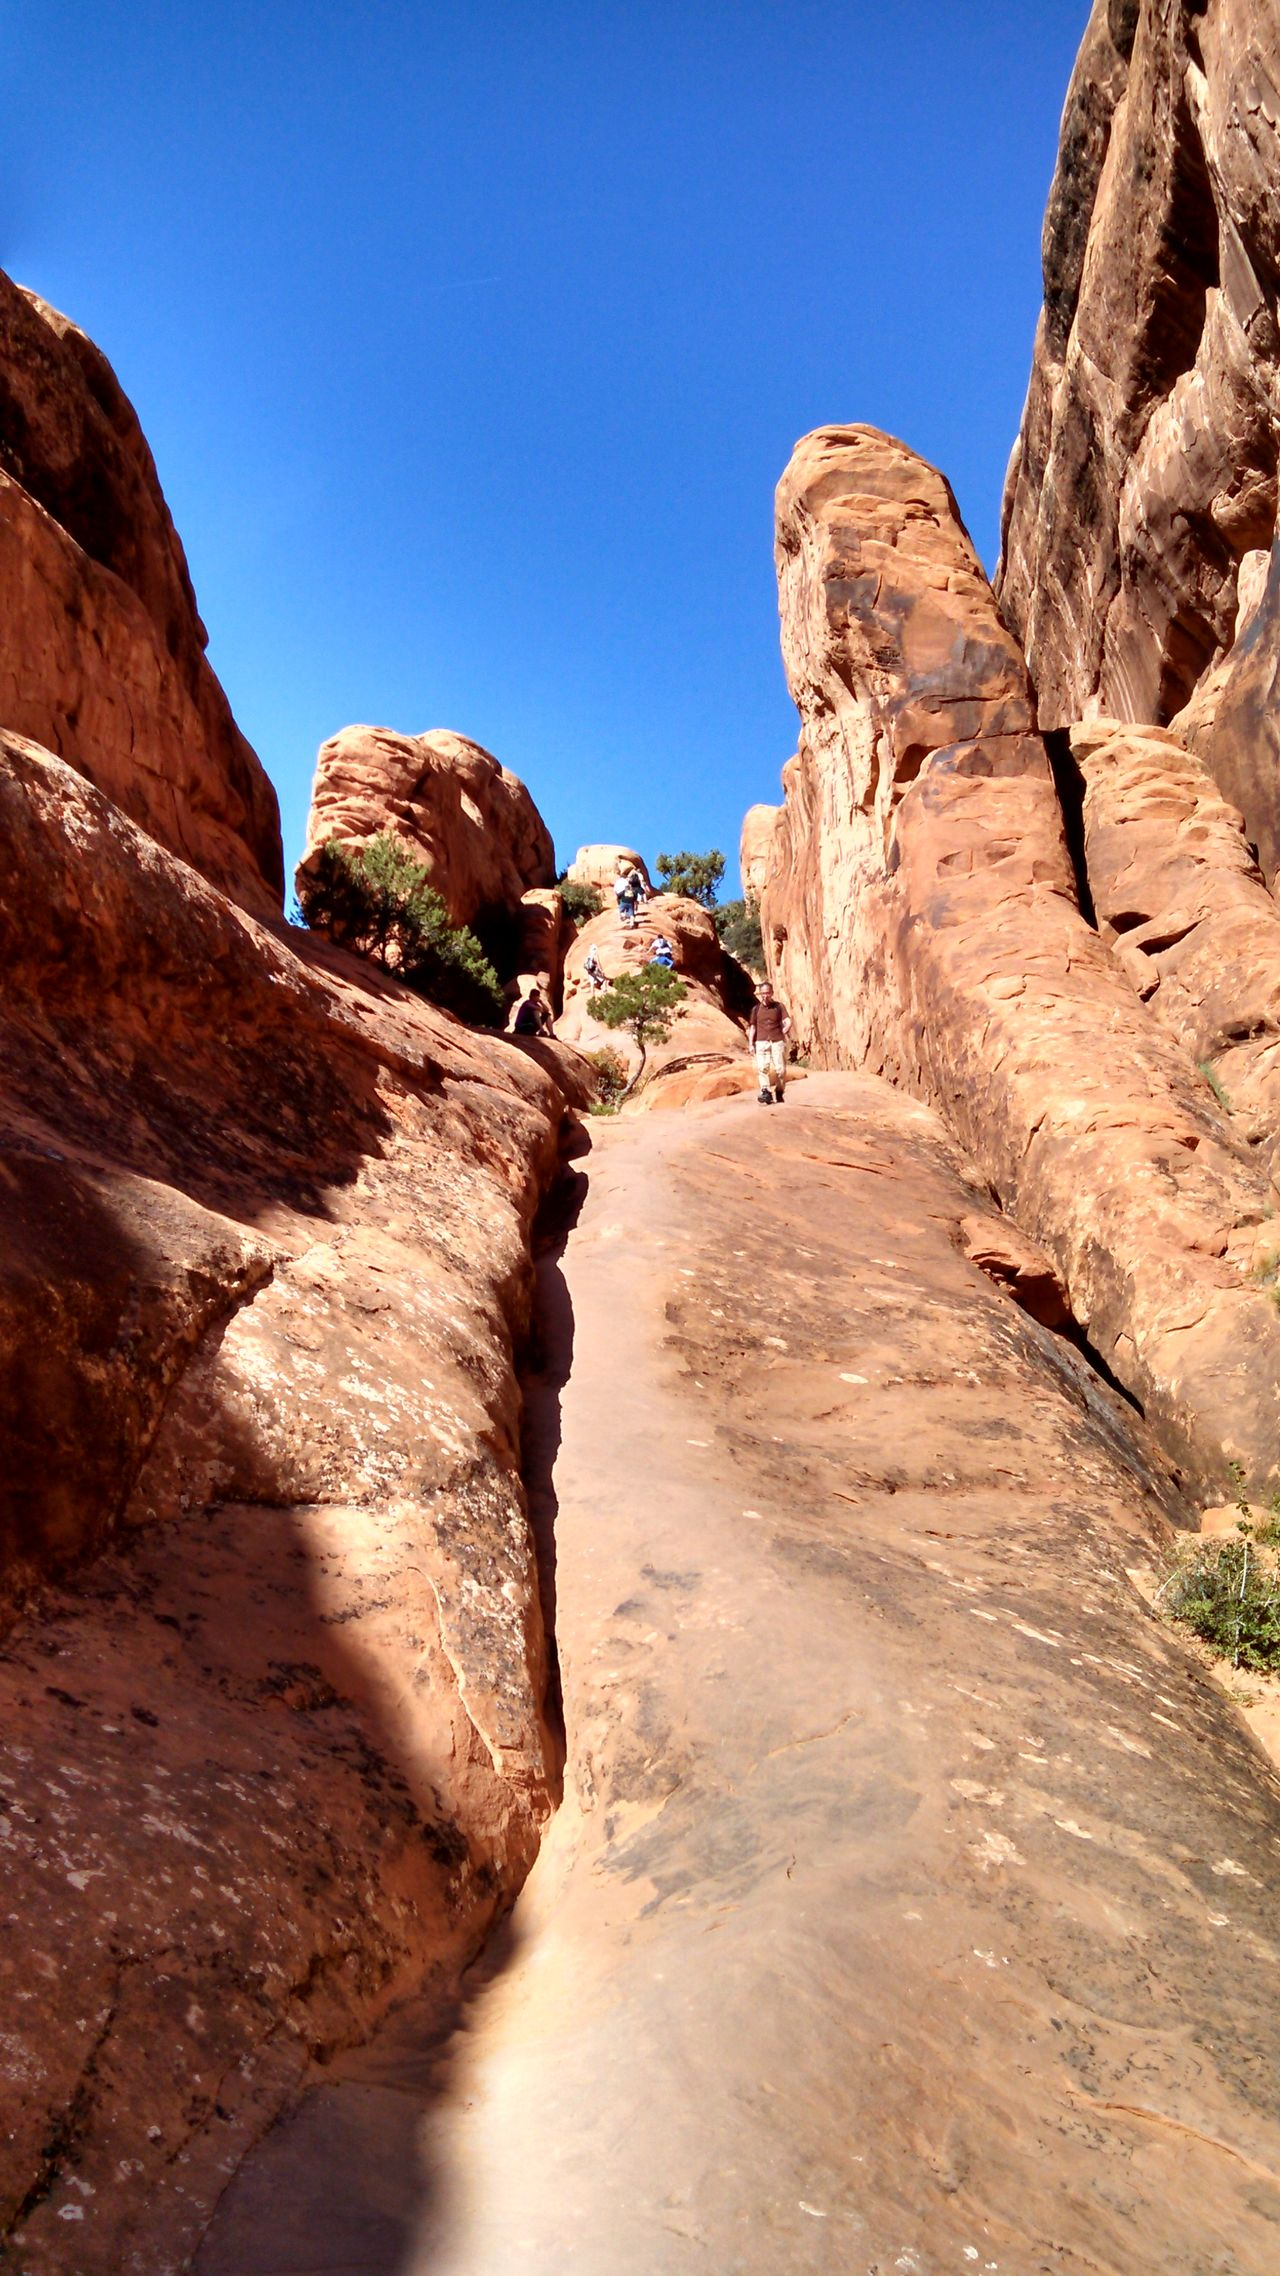 #arches #nationalpark #redrock #Utah Arid Climate Beauty In Nature Blue Clear Sky Cliff Day Eroded Geology Mountain Nature Physical Geography Rock Rock - Object Rock Formation Rocky Mountains Rough Scenics Sunlight Tranquil Scene Tranquility